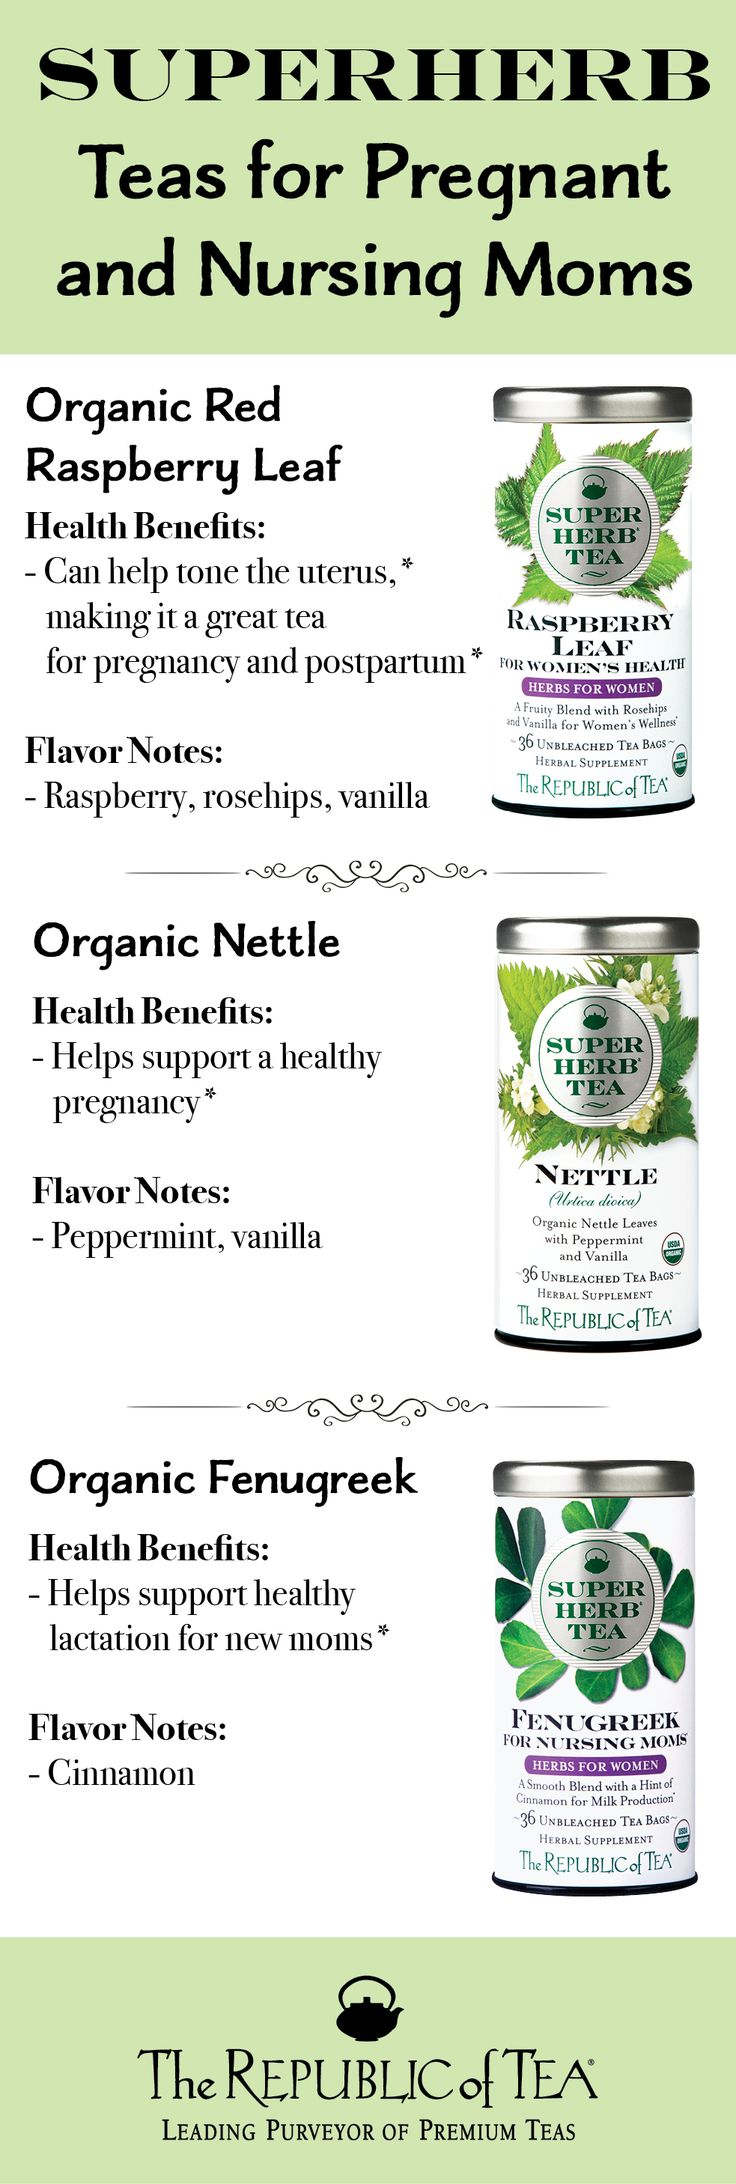 Three great teas for supporting healthy pregnancy and breast feeding journeys! The Republic of Tea blends each SuperHerb with delicious spies so your taste buds will love these teas as much as your body!